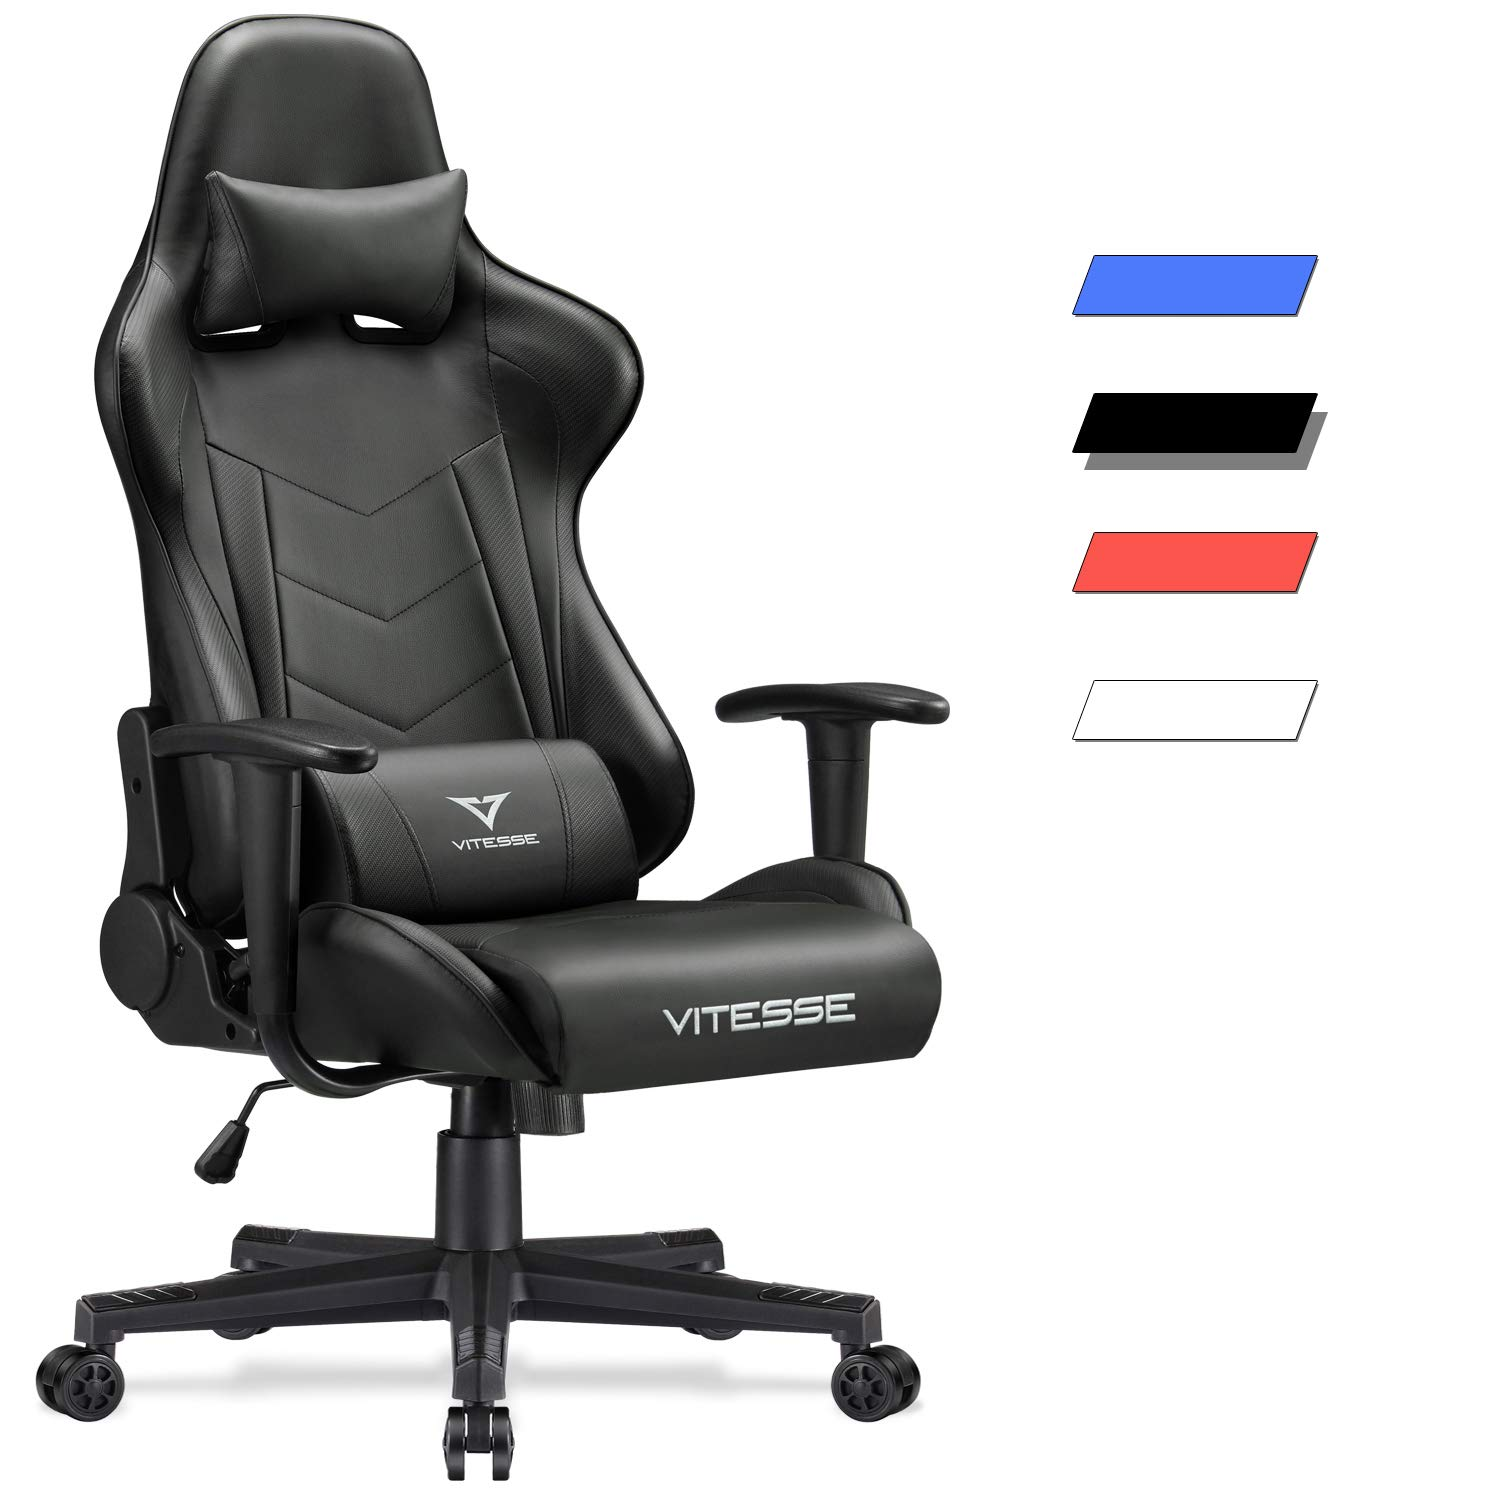 Vitesse Gaming Chair (Sillas Gaming) Video Gaming Chair Ergonomic Computer Desk Chair High Back Racing Style Comfortable Chair Swivel Executive Leather Chair with Lumbar Support and Headrest (Black) by Waleaf